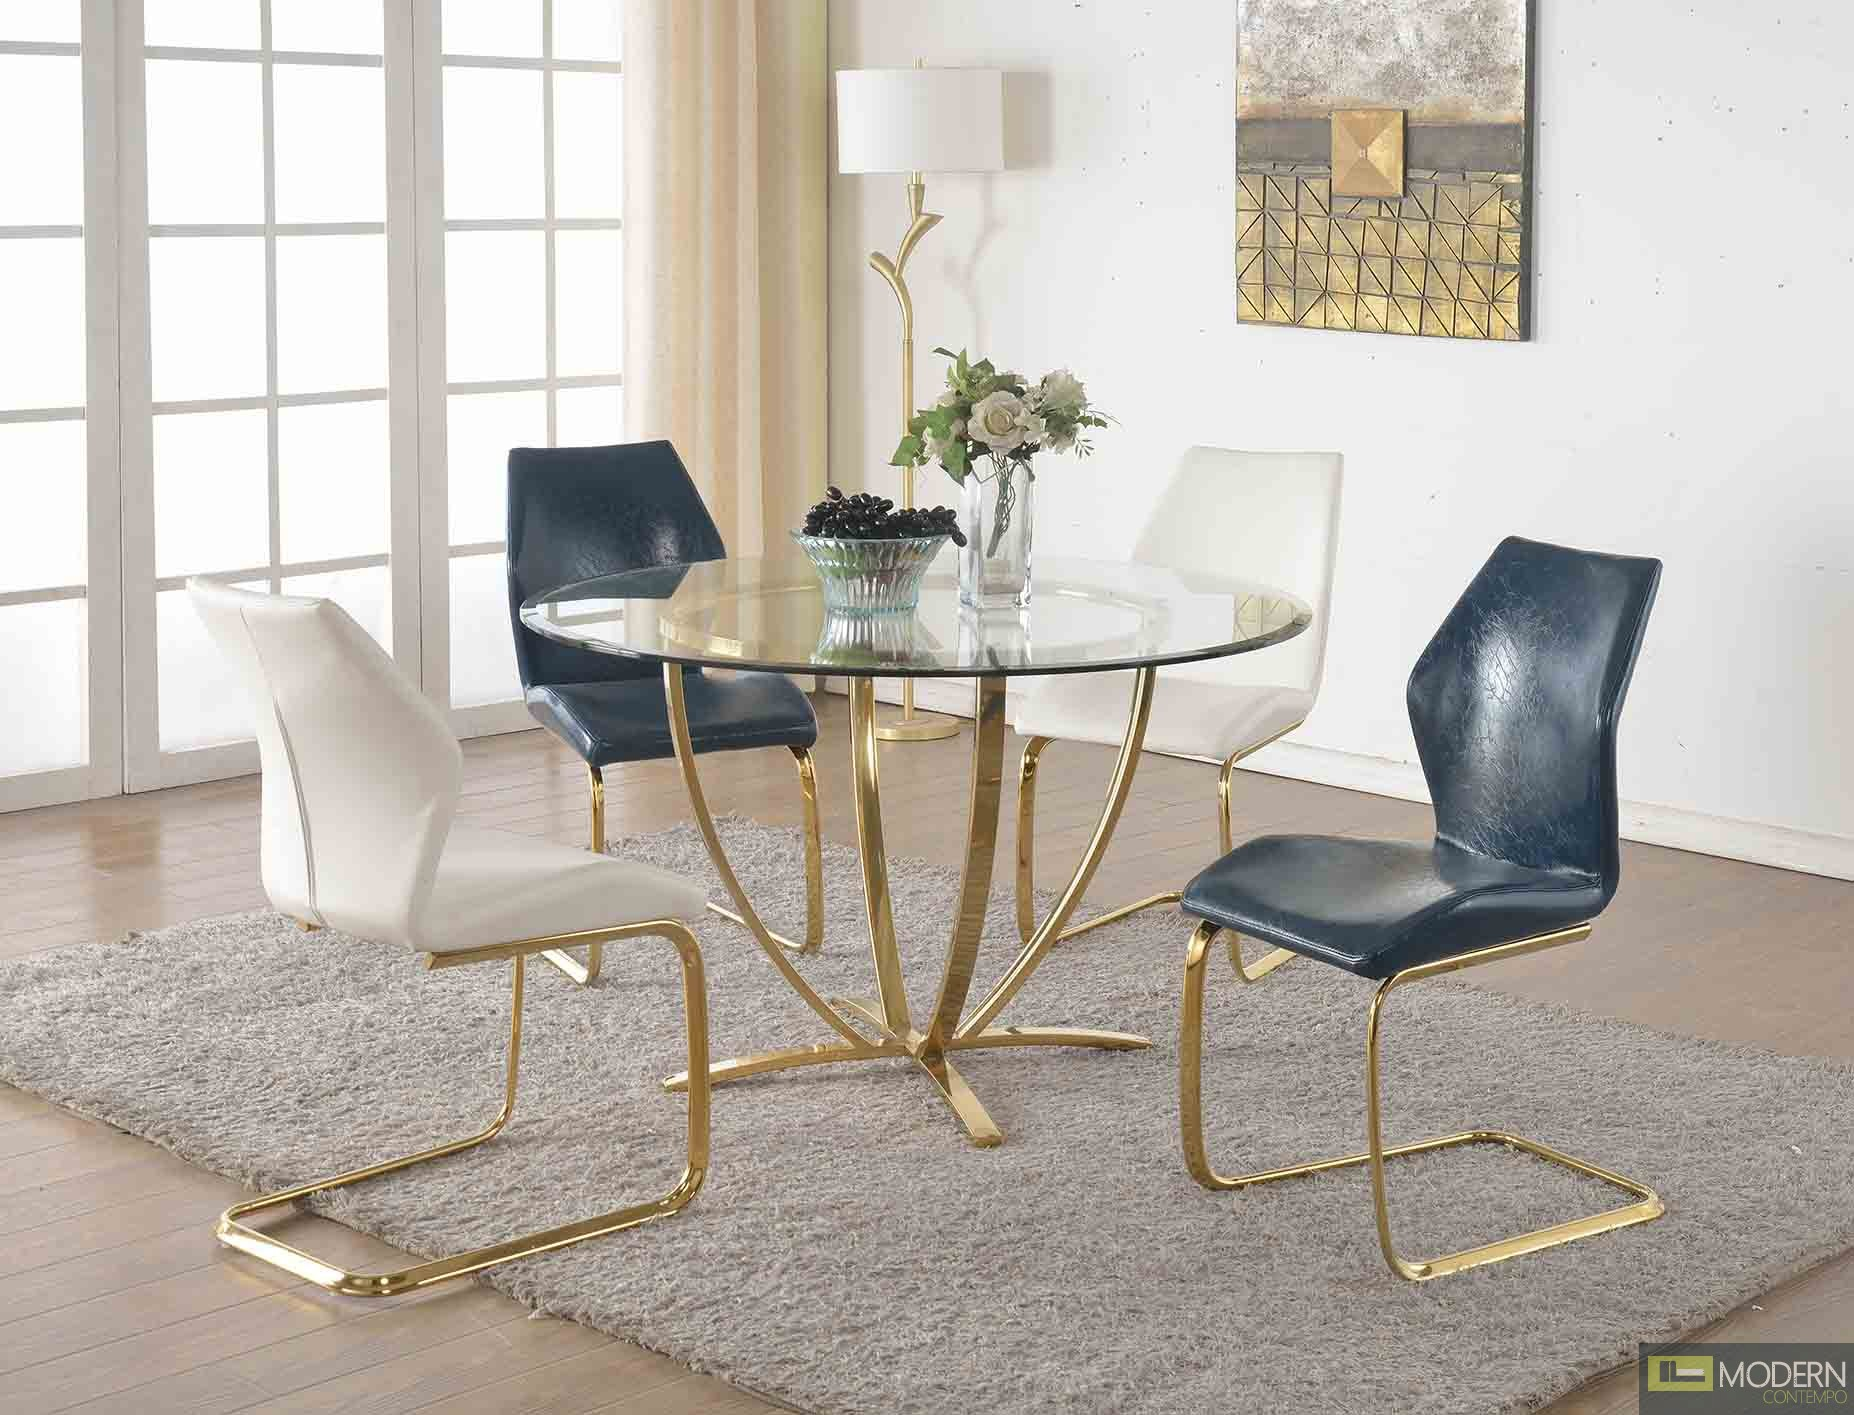 5Pc Natasha Dining Set with Gold Accents